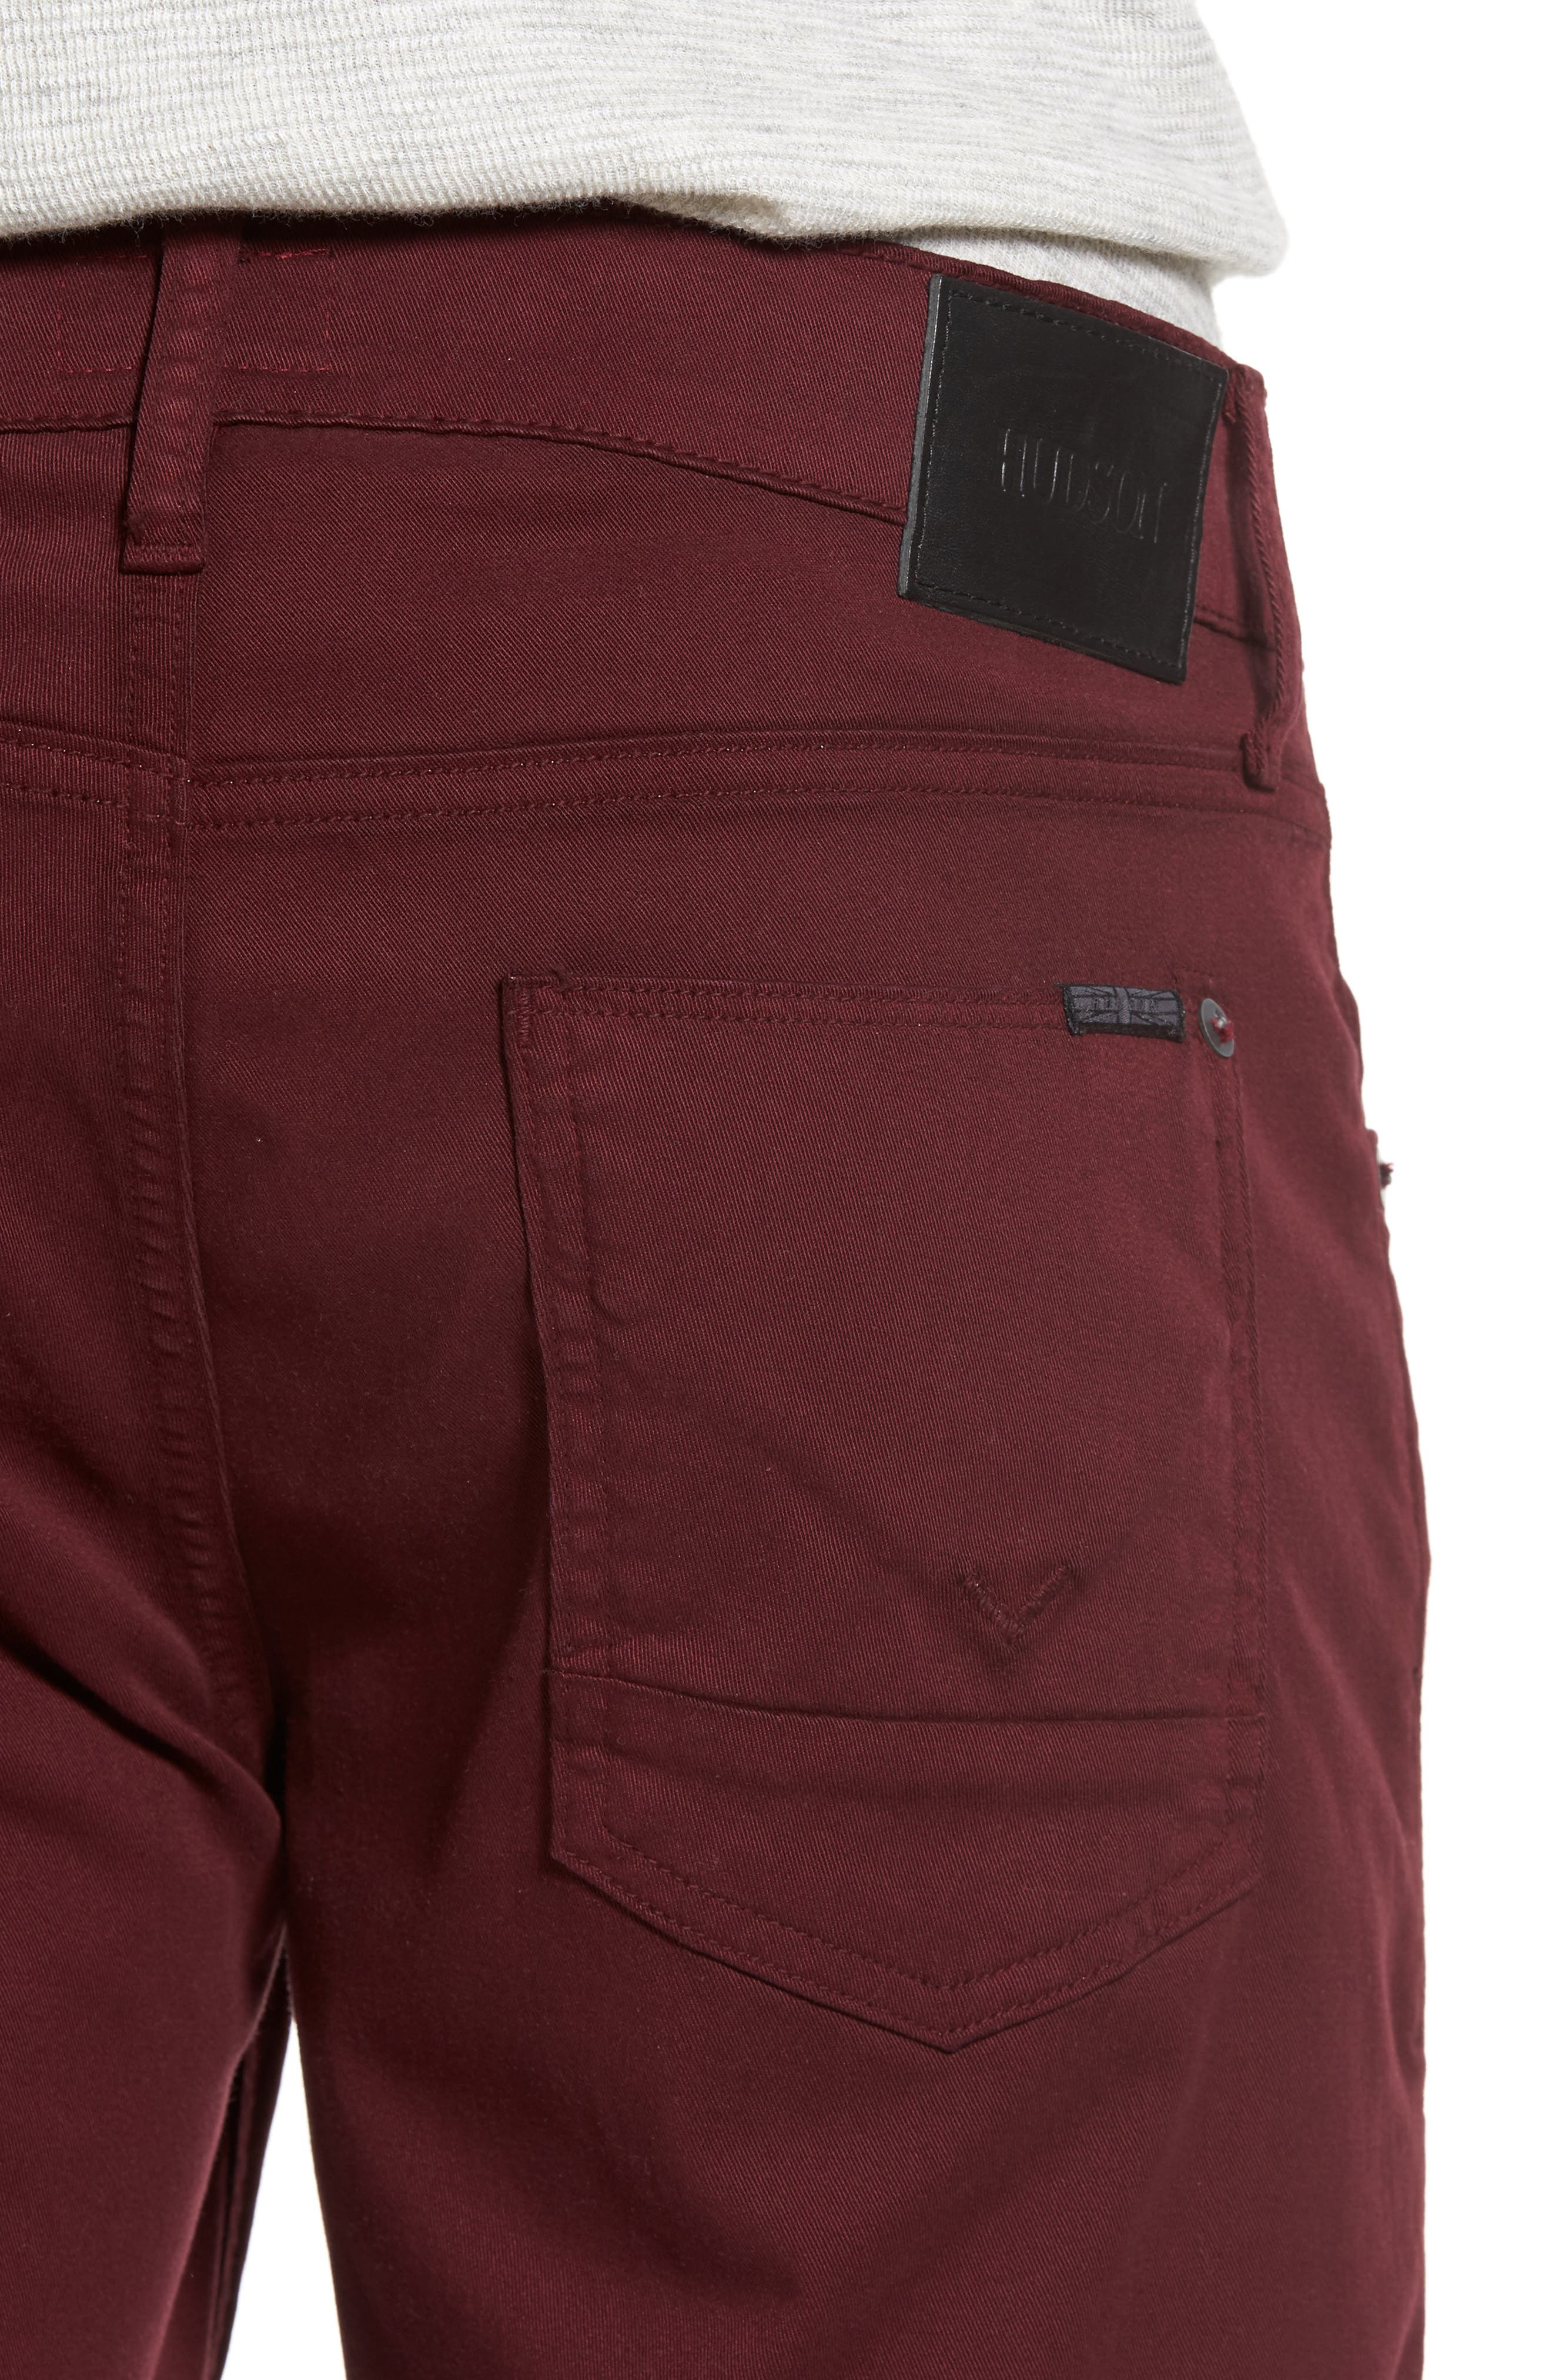 Blake Slim Fit Jeans,                             Alternate thumbnail 4, color,                             BURGUNDY